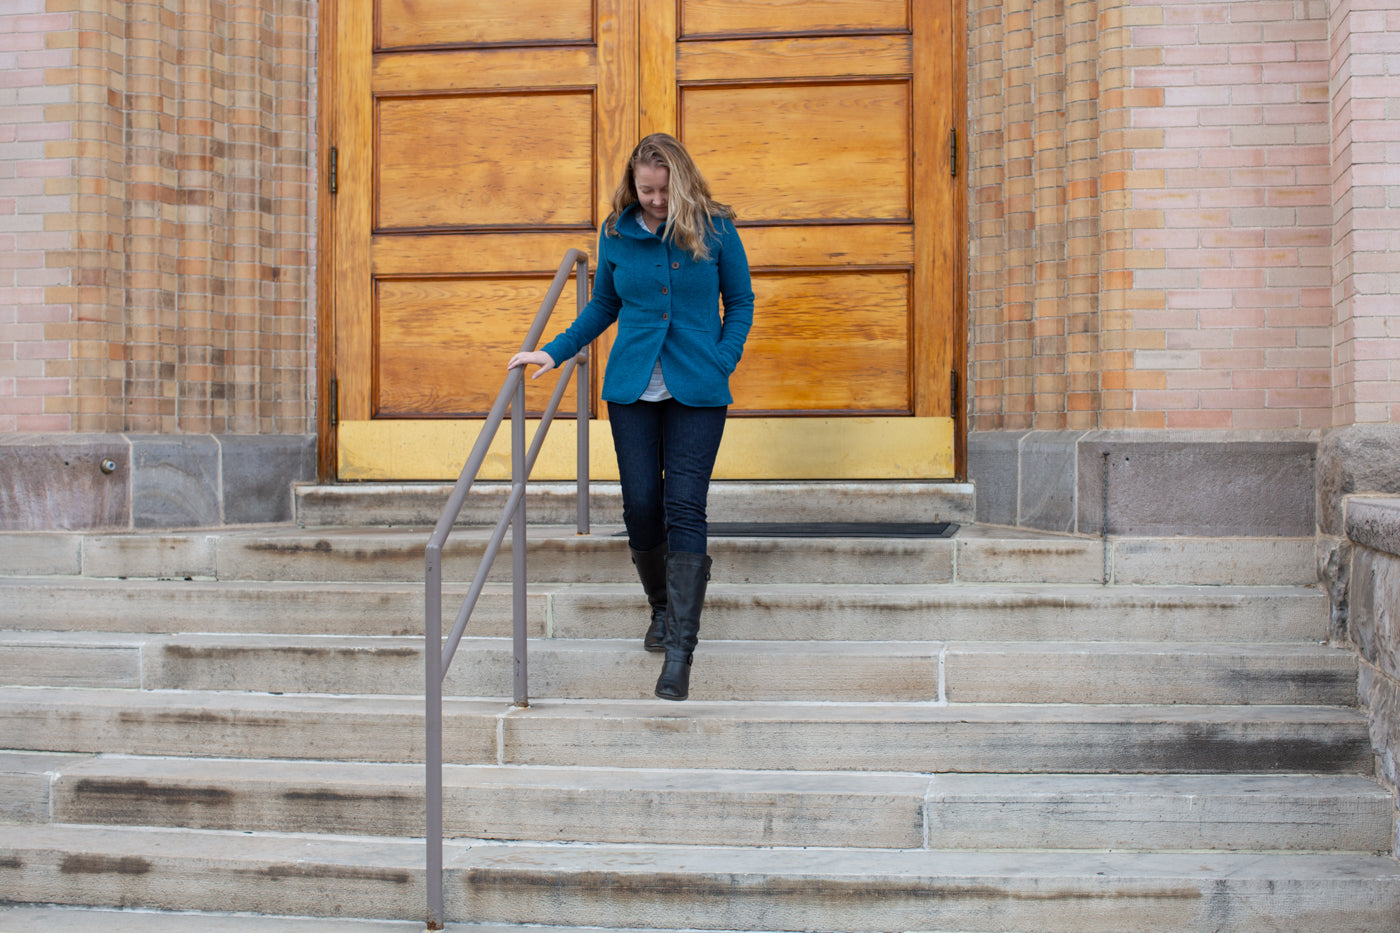 Danielle walking down stairs in front of a building with a large wood door.  Danielle is wearing denim jeans and an ocean blue peacoat.